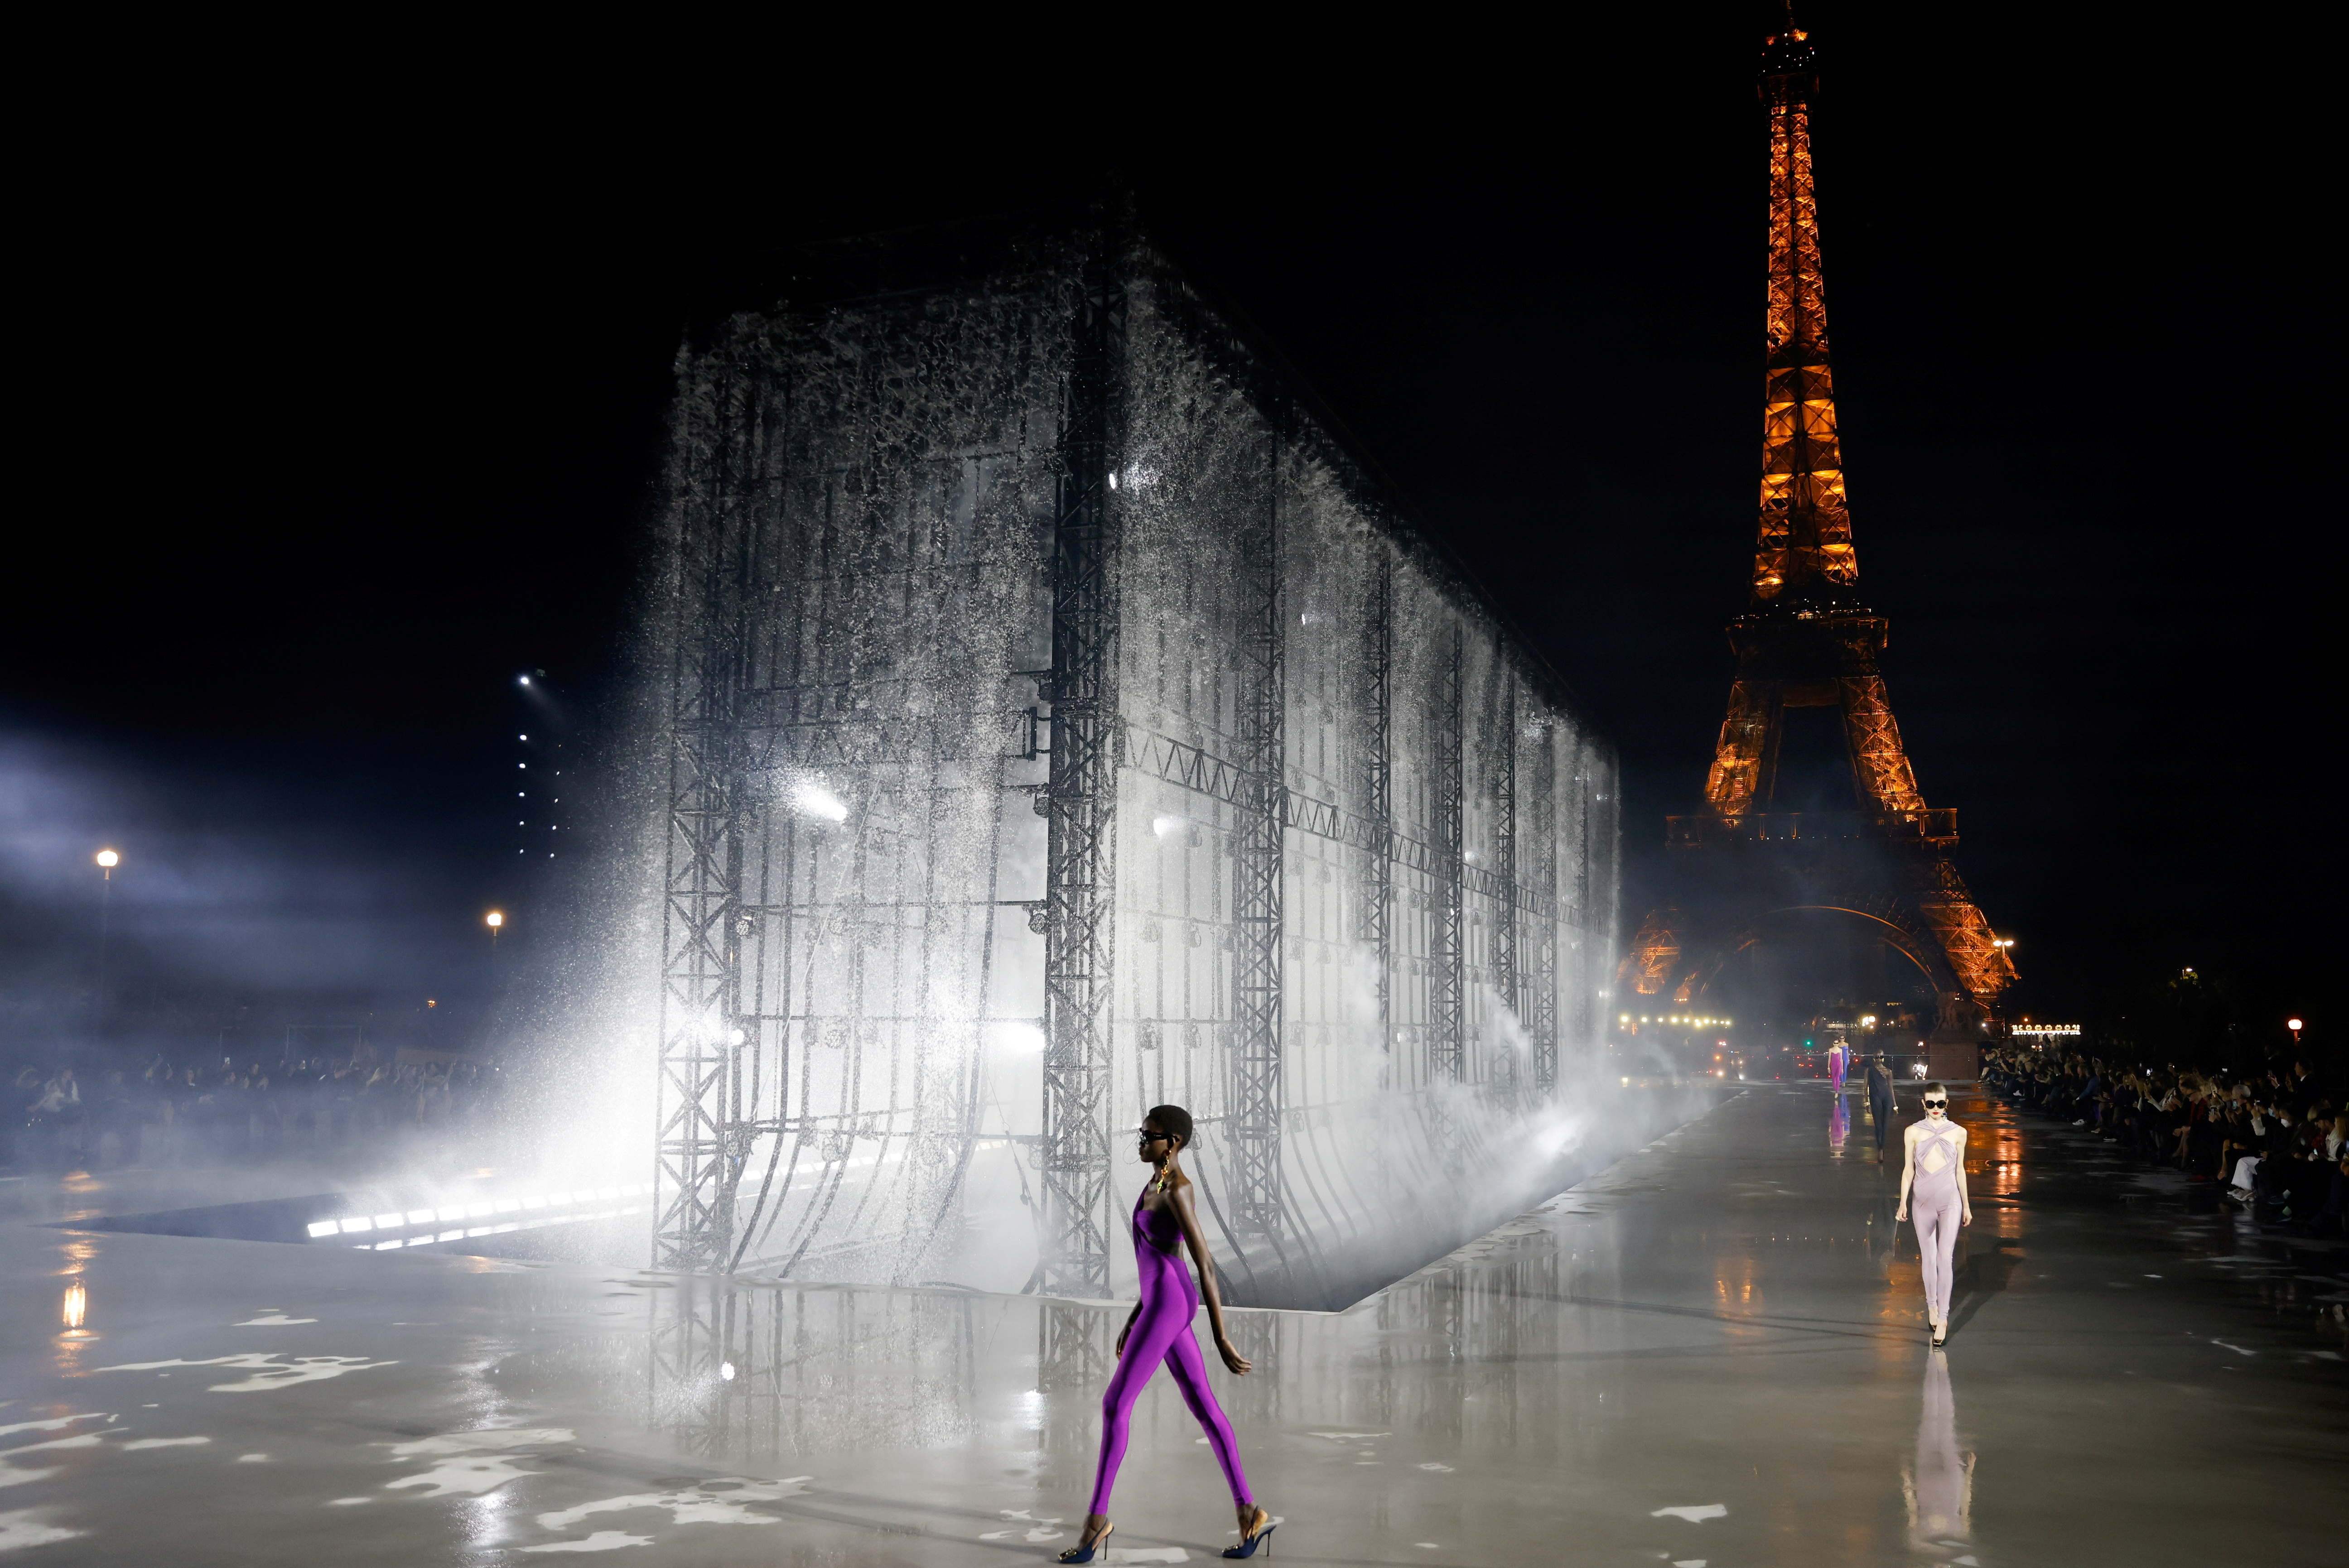 A model presents a creation by designer Anthony Vaccarello as part of his Spring/Summer 2022 women's ready-to-wear collection show for fashion house Saint Laurent, in front of the Eiffel Tower during Paris Fashion Week, in Paris, France, September 28, 2021. REUTERS/Stephane Mahe